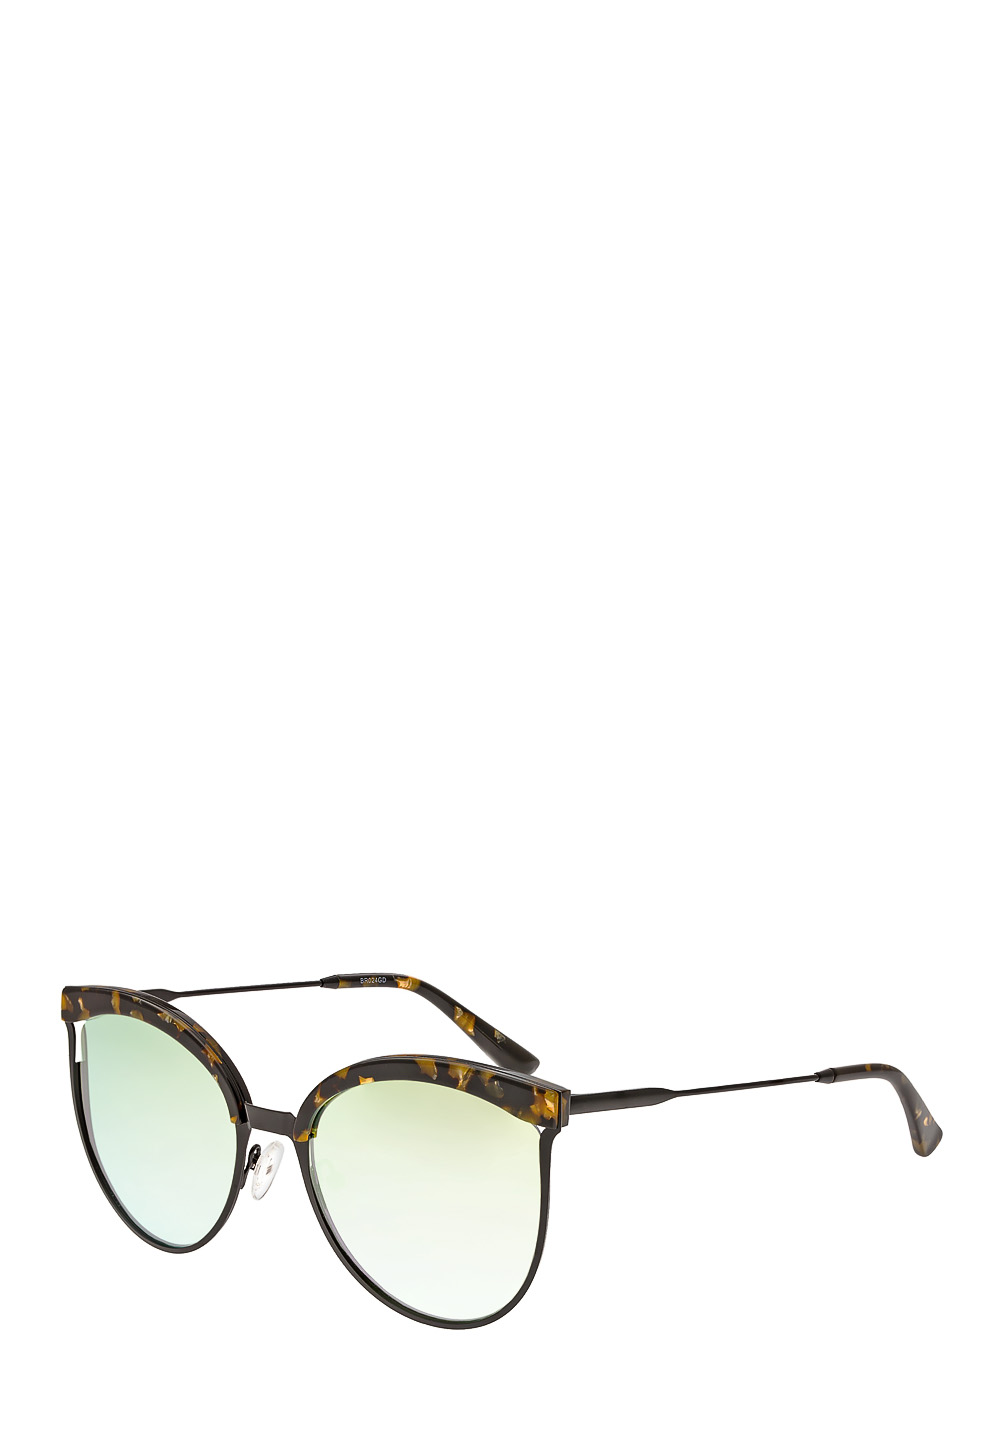 Bertha Sonnenbrille, Cat-Eye bunt